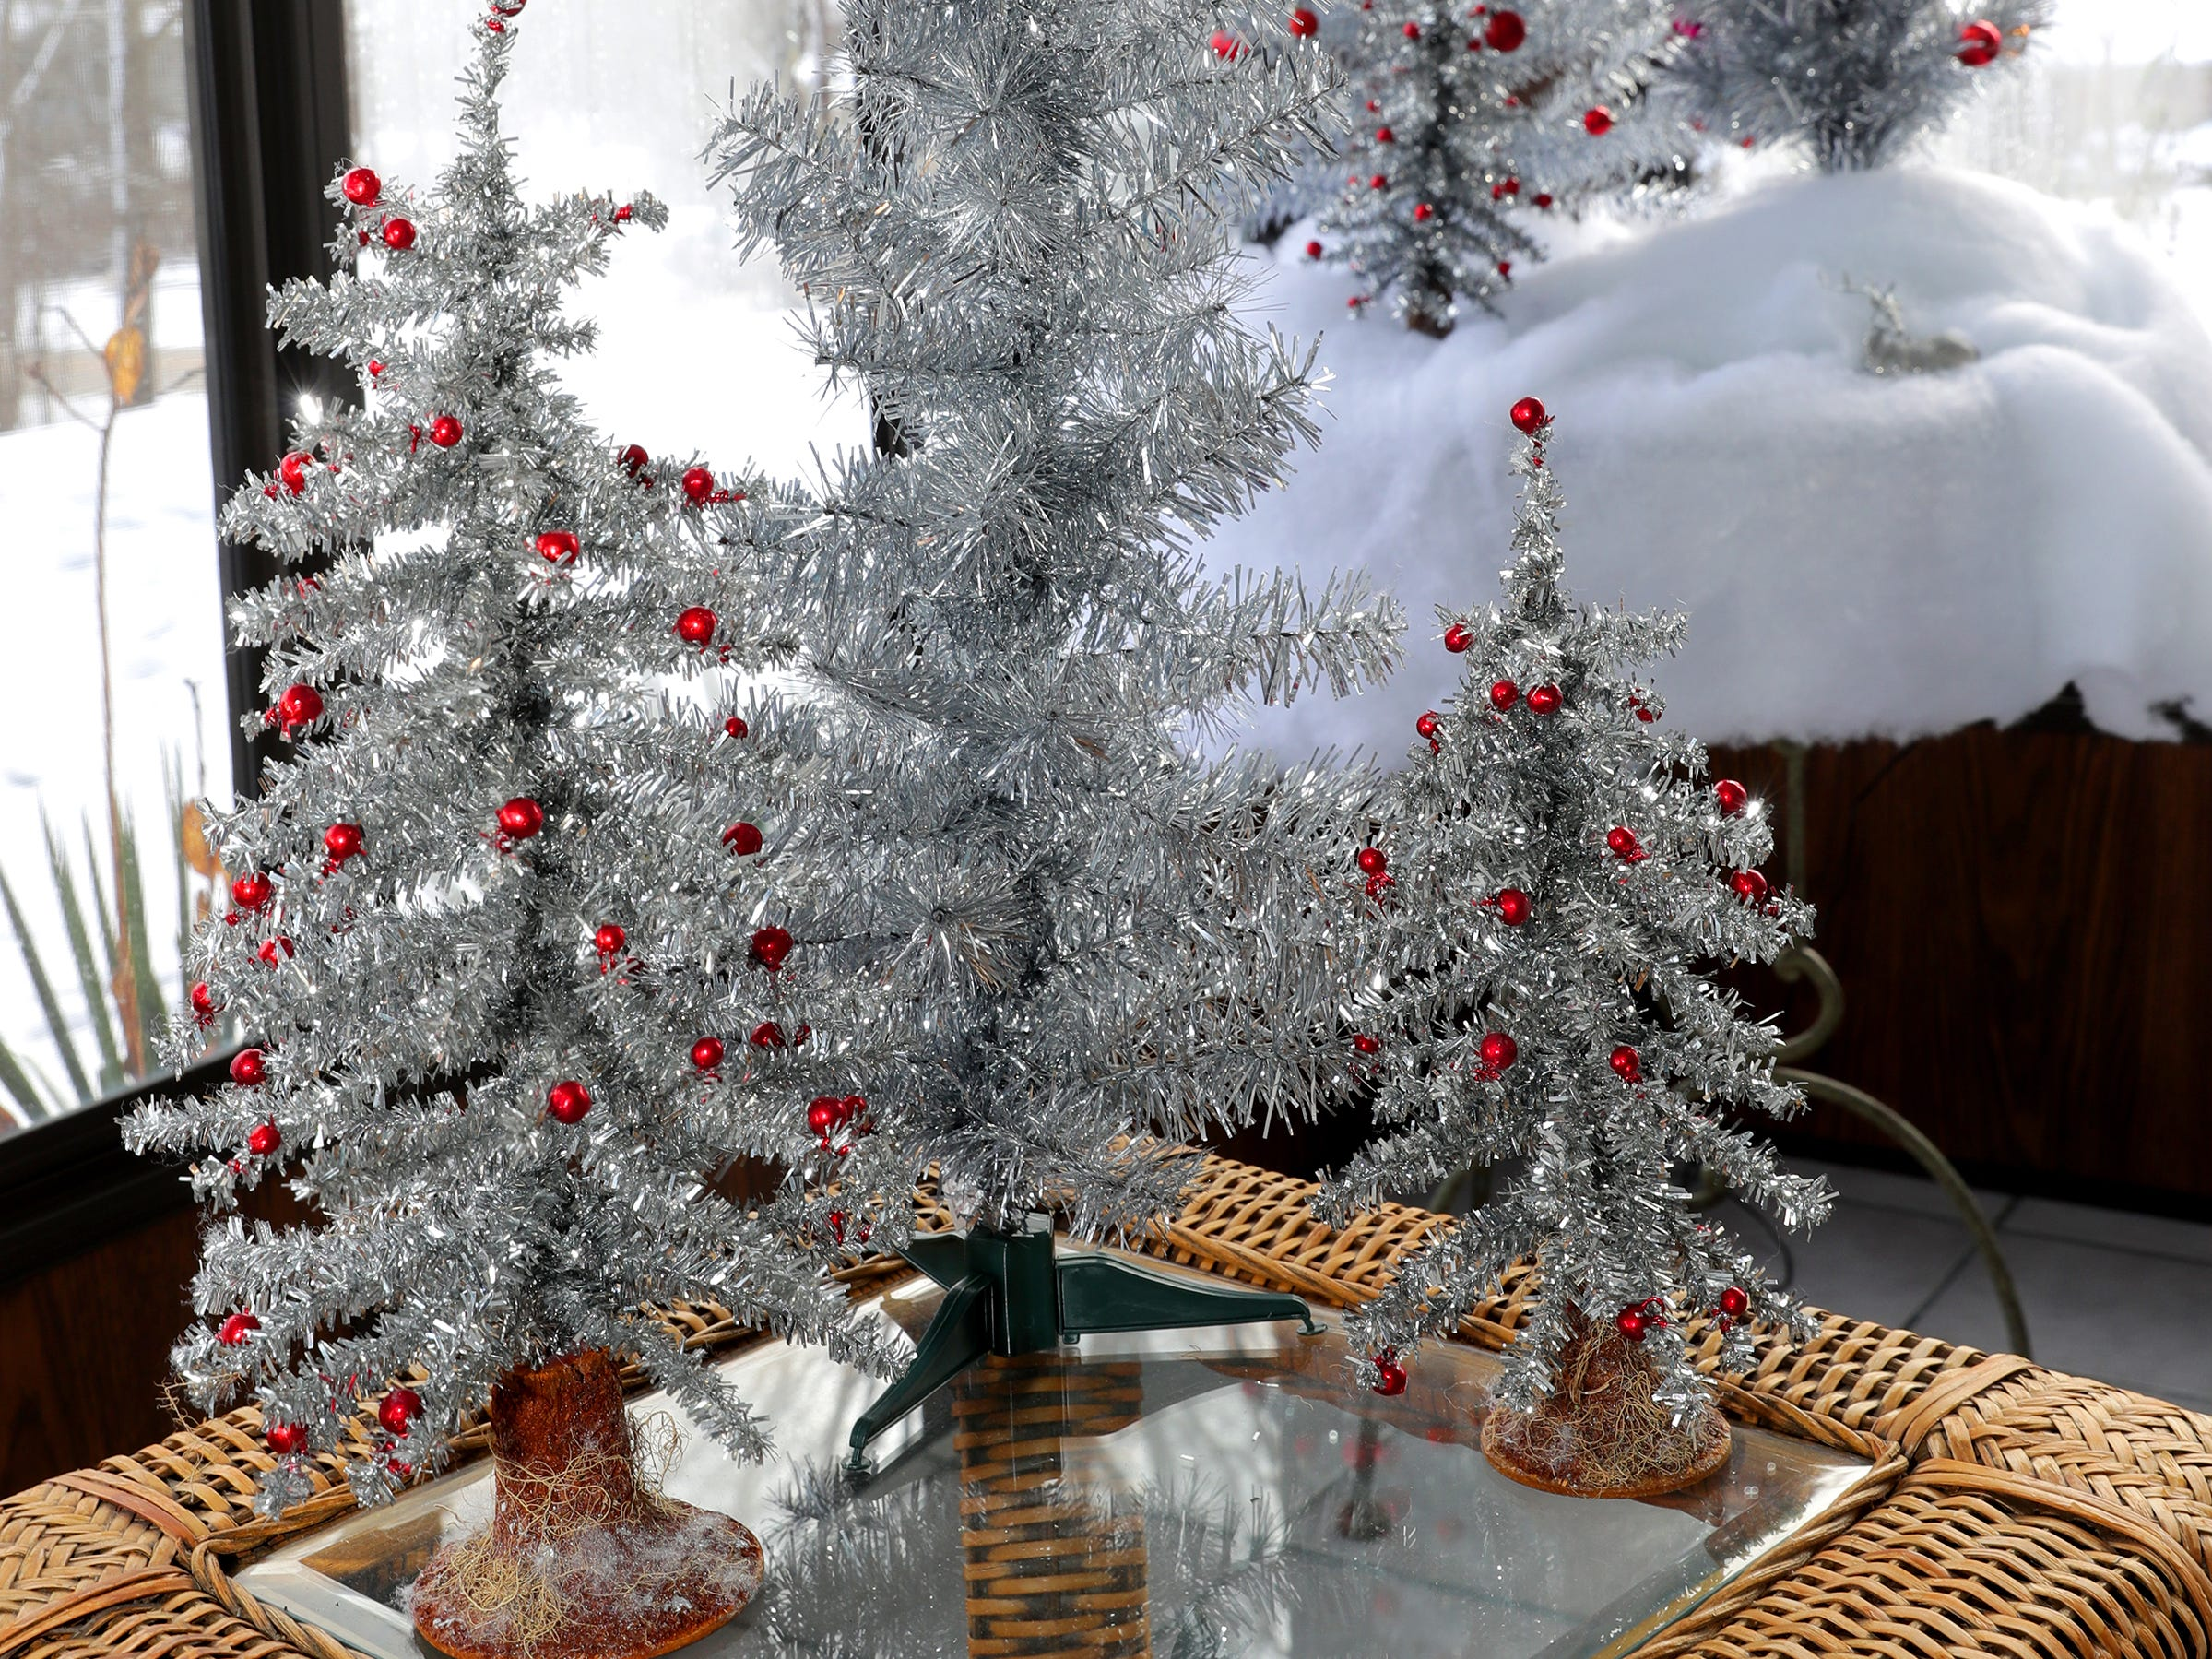 An assortment of aluminum tabletop trees with tiny red ornaments spruce up the three-season room.